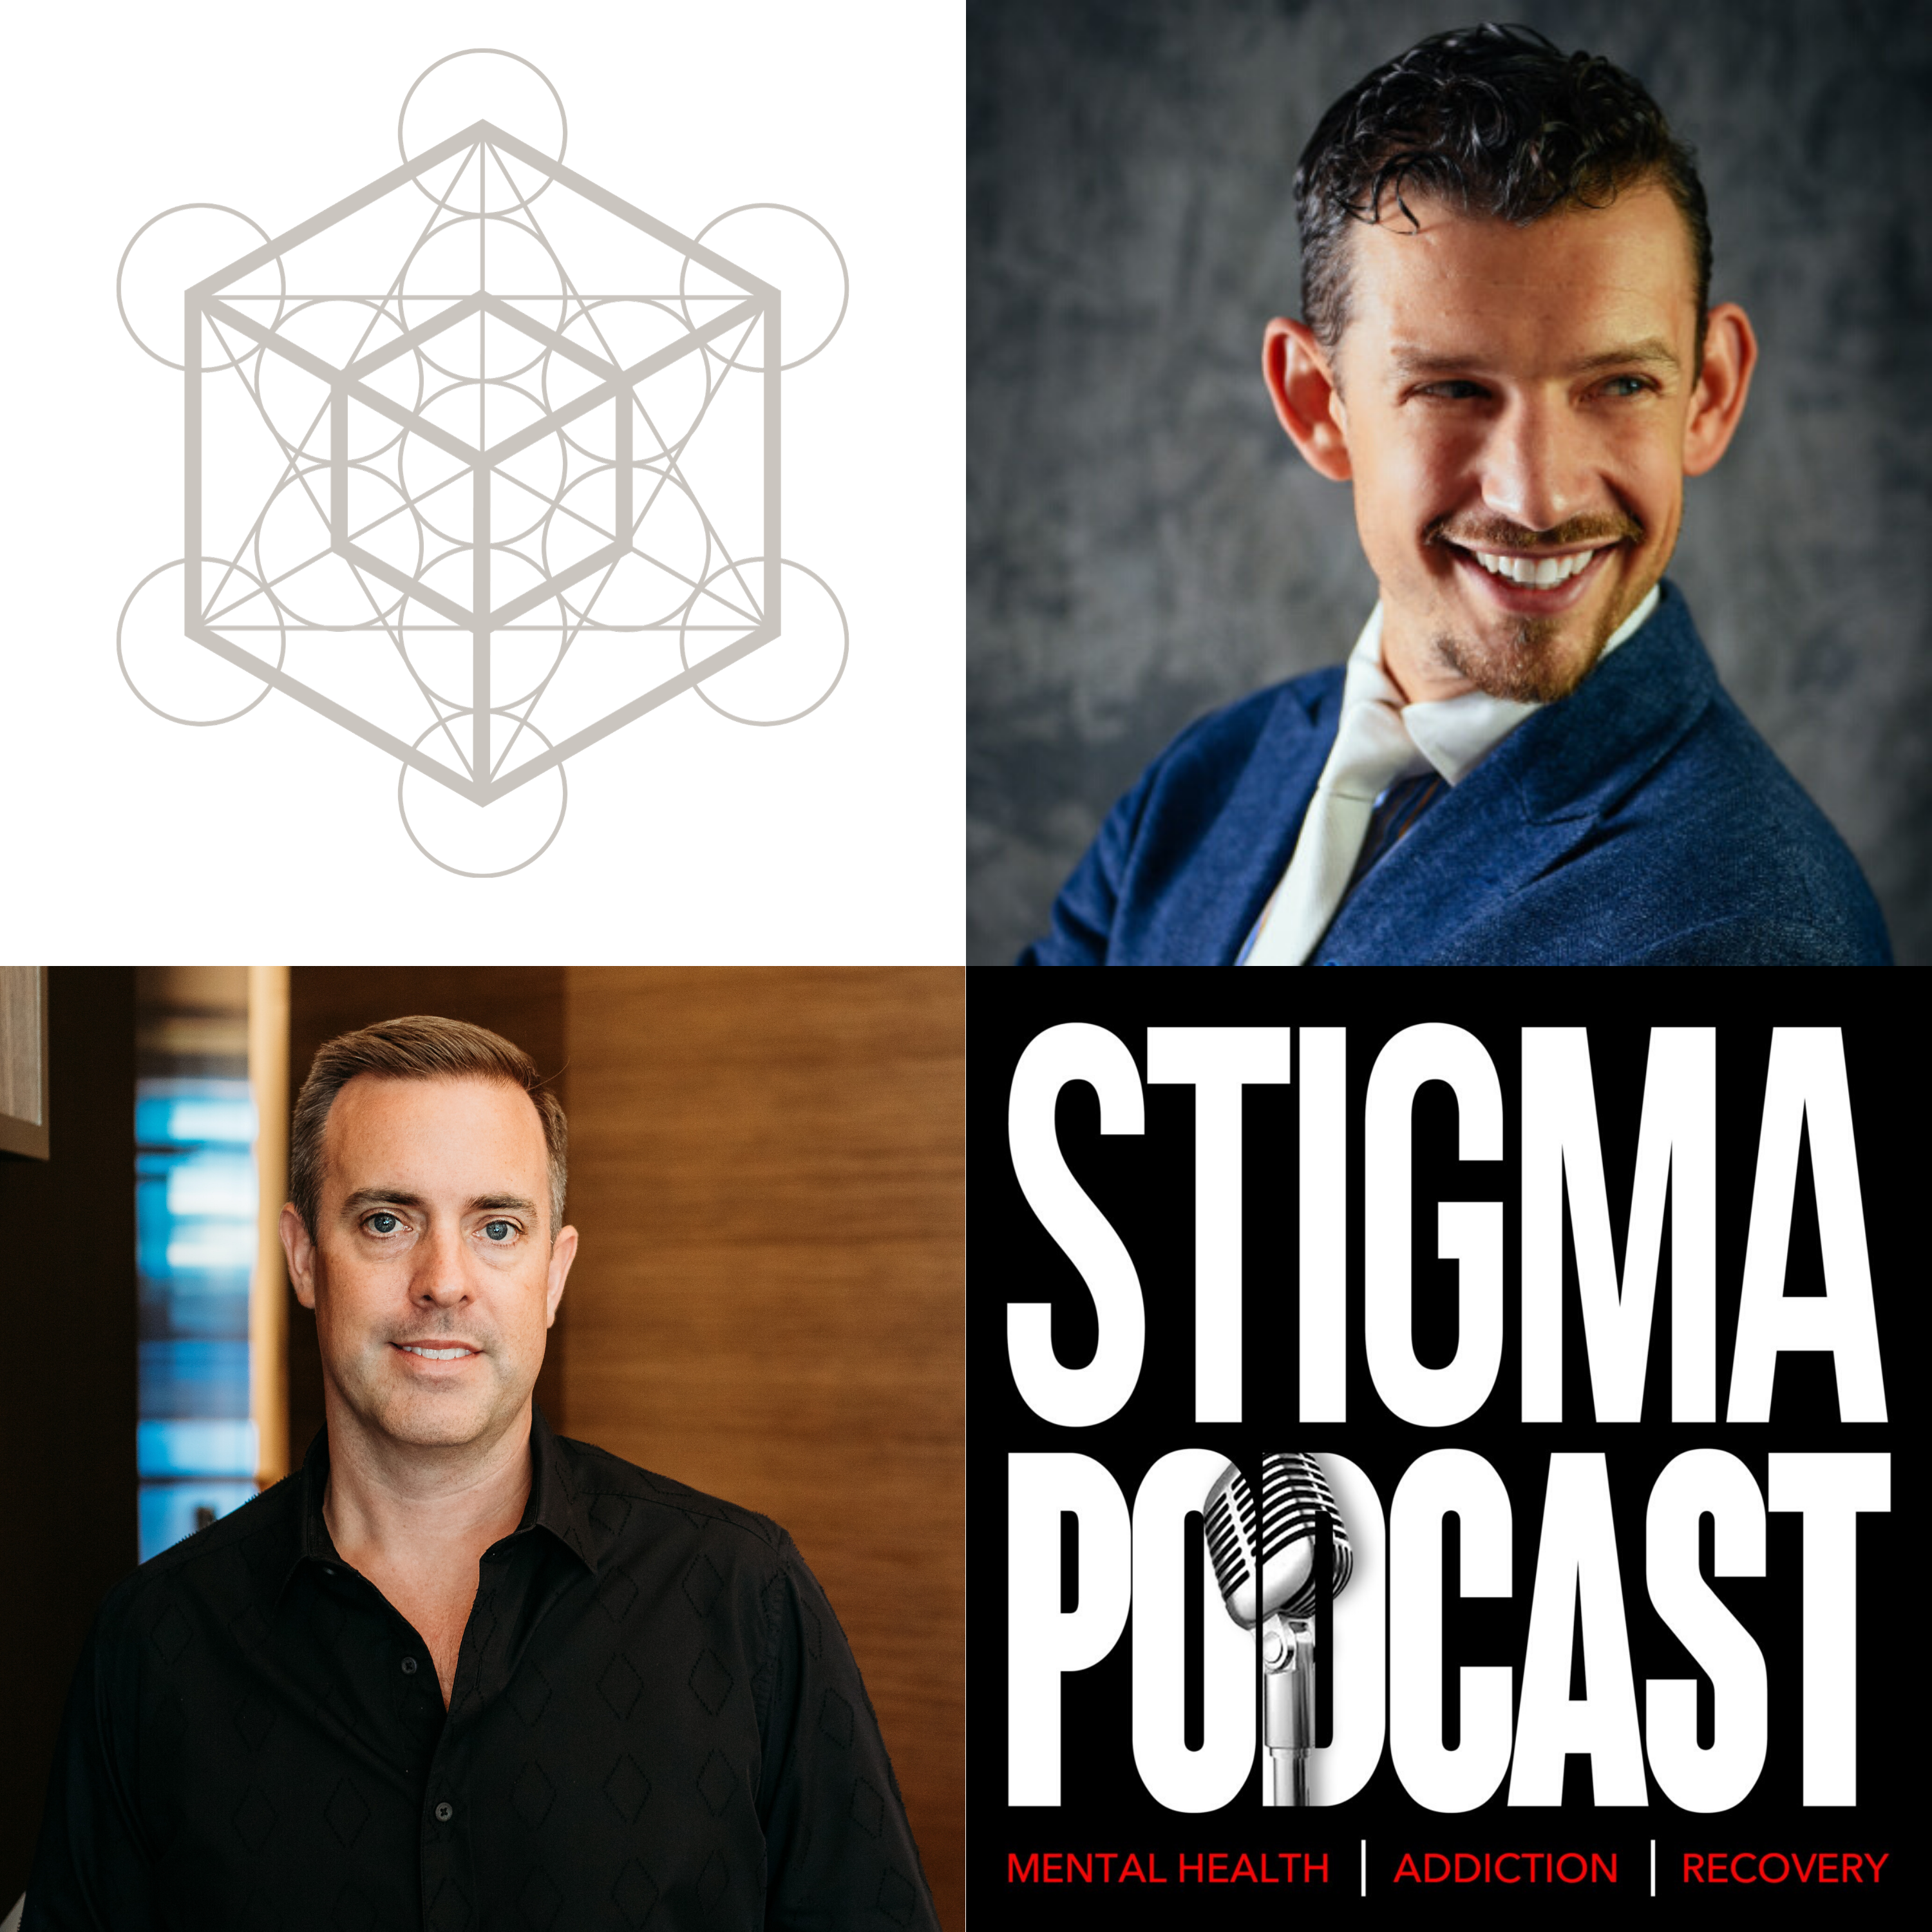 Stigma Podcast - Mental Health - #36 - Limitless Ventures Founder, Alexander Holt on Investing in Behavioral Health and Addiction Solutions